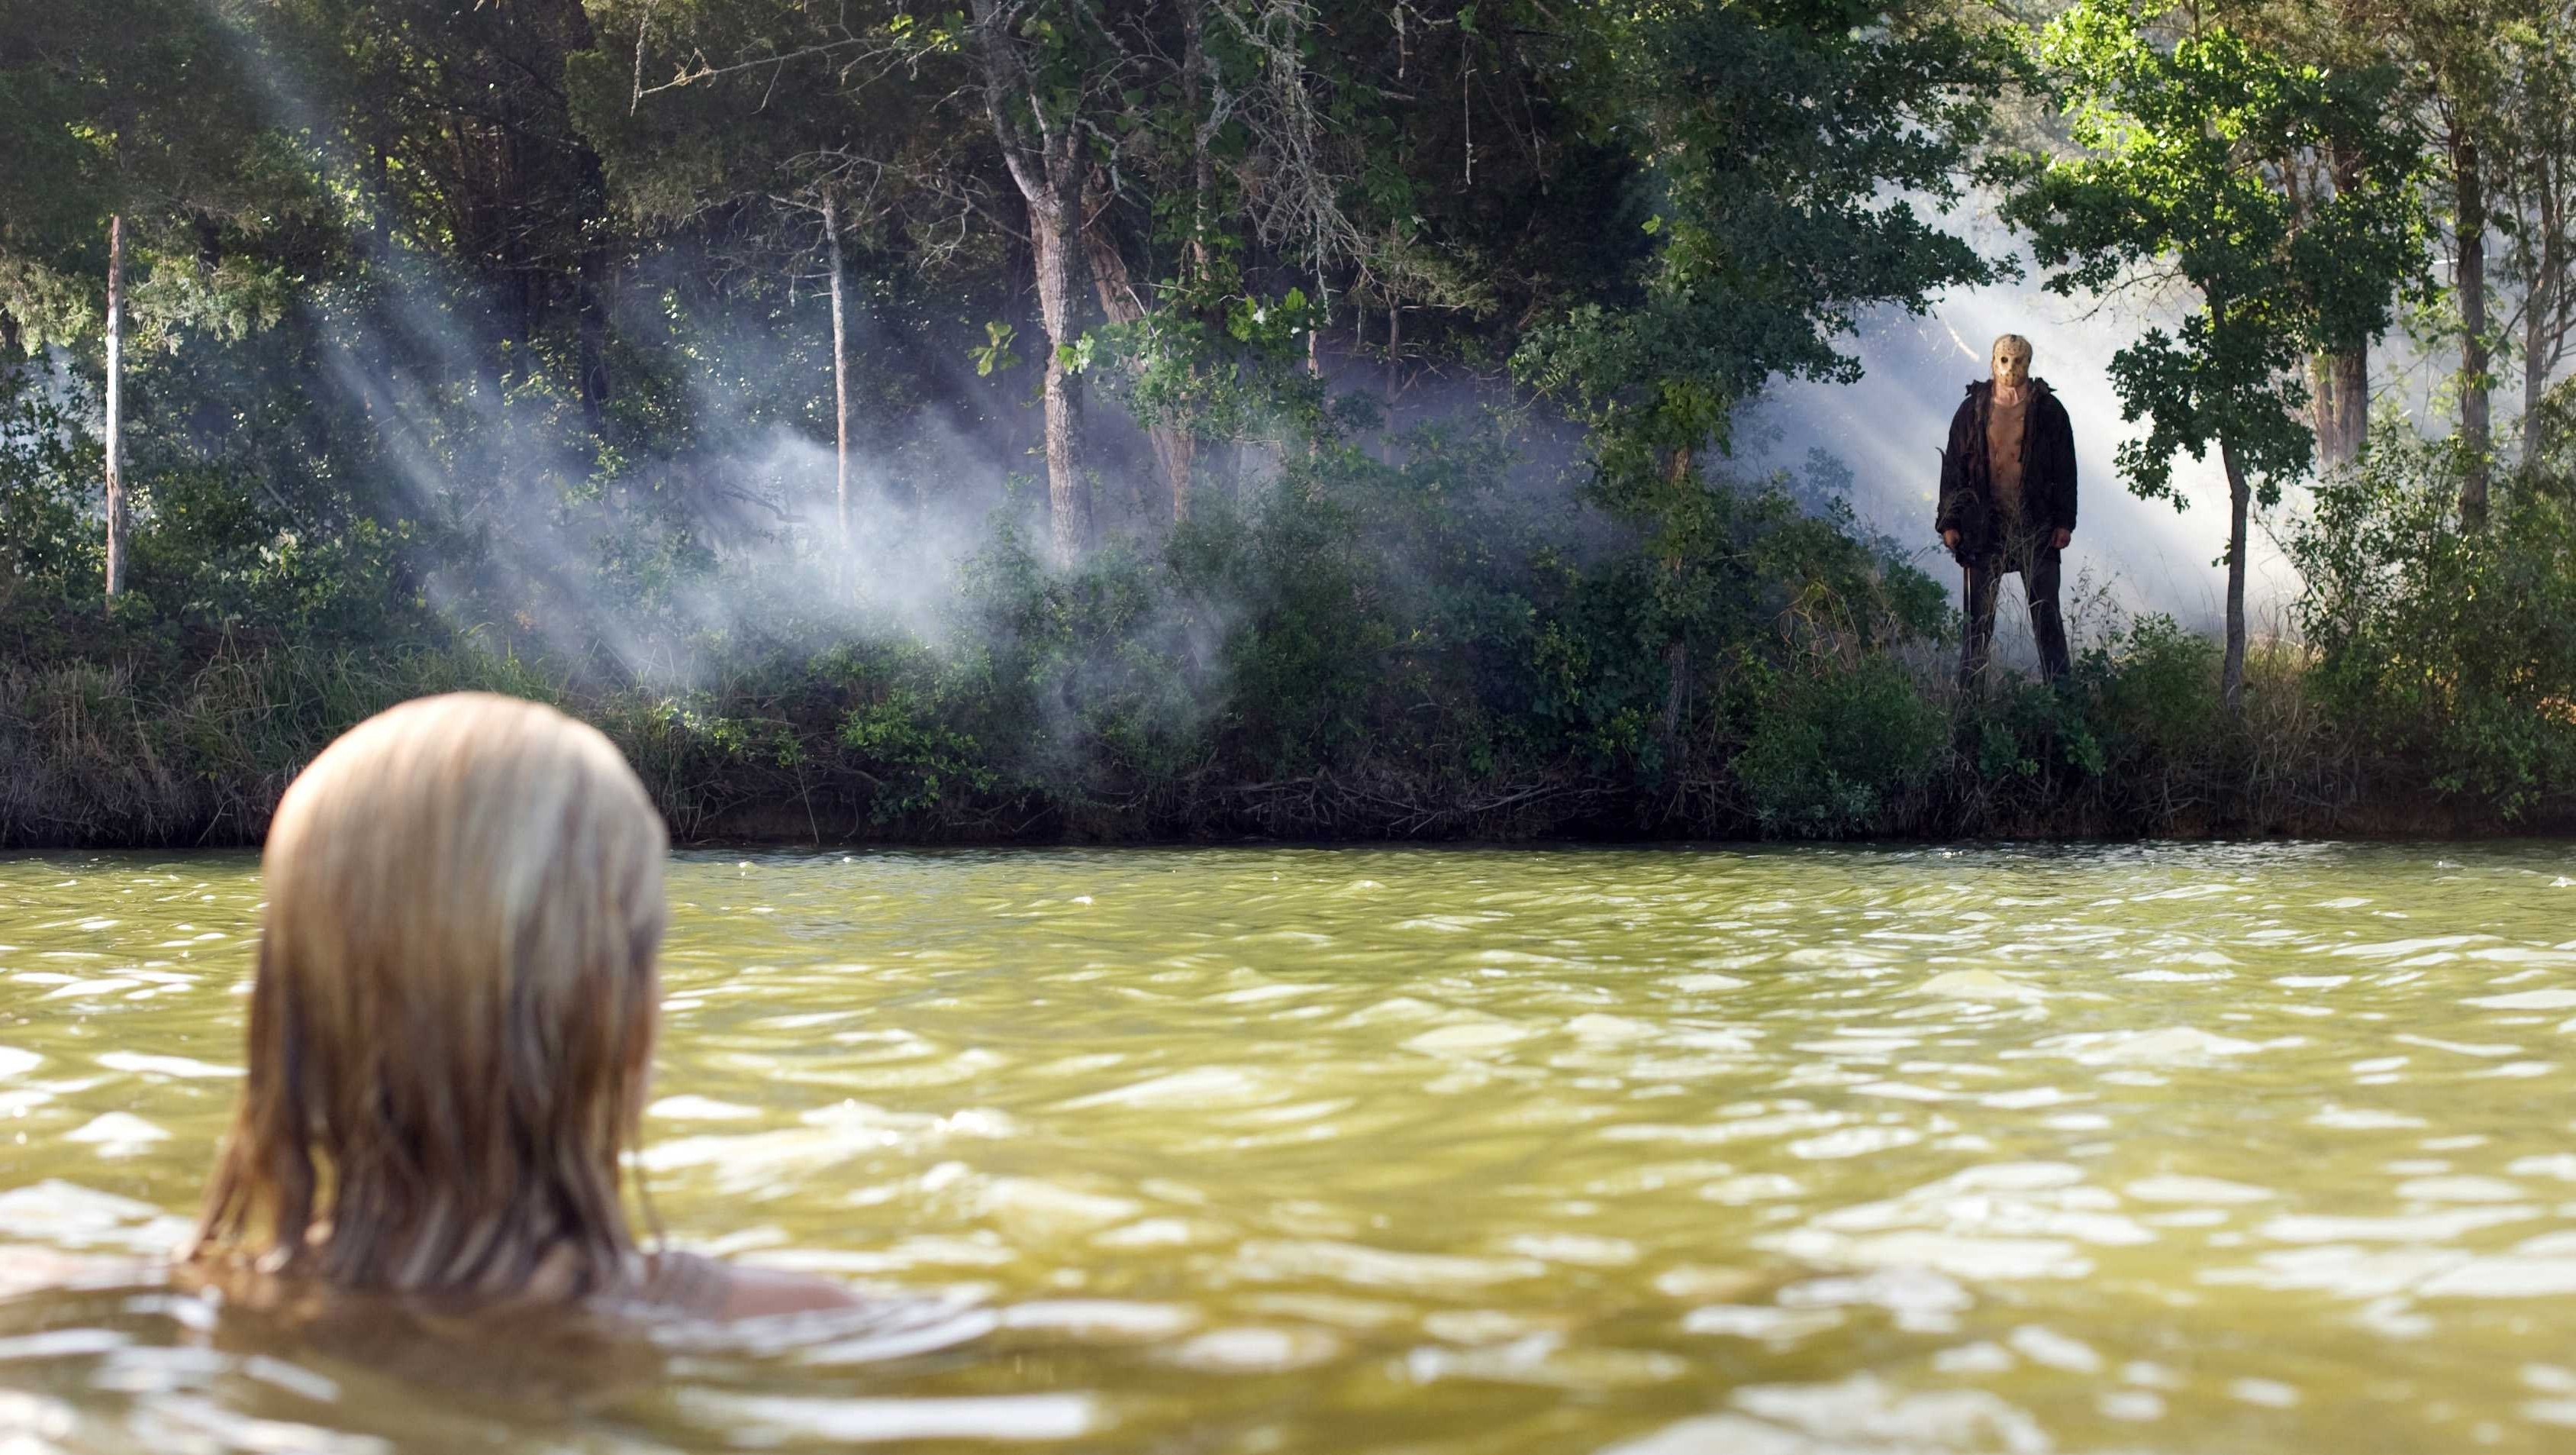 New Friday The 13th Movie Is A Total Reboot, Will Be Released In March 2015  – Bleeding Cool News And Rumors